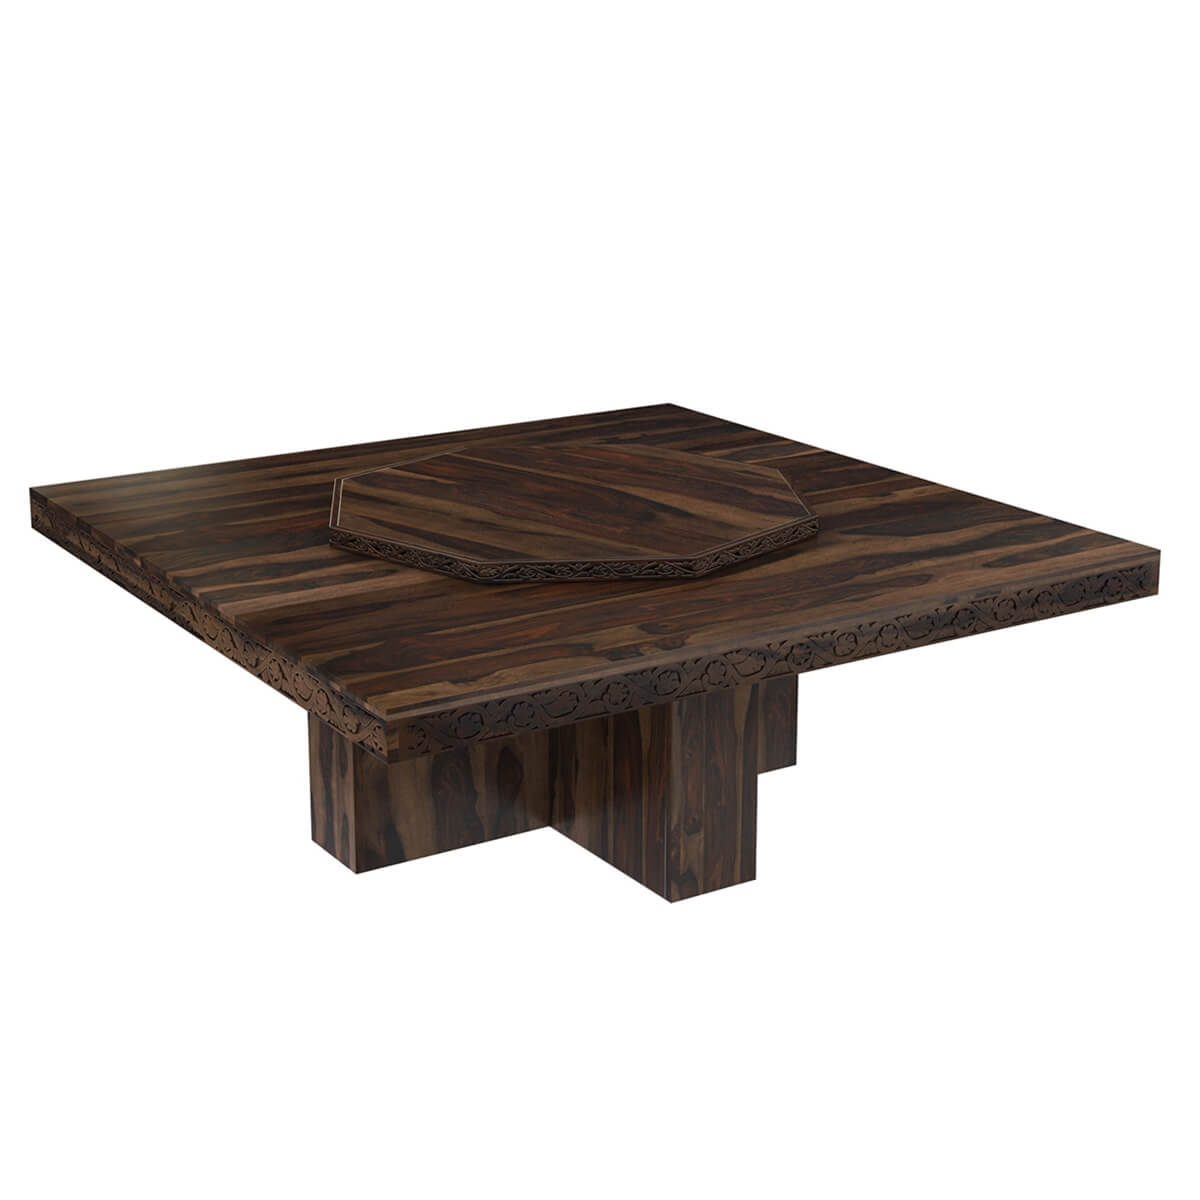 Rustic Solid Wood Large Square Pedestal Dining Table With